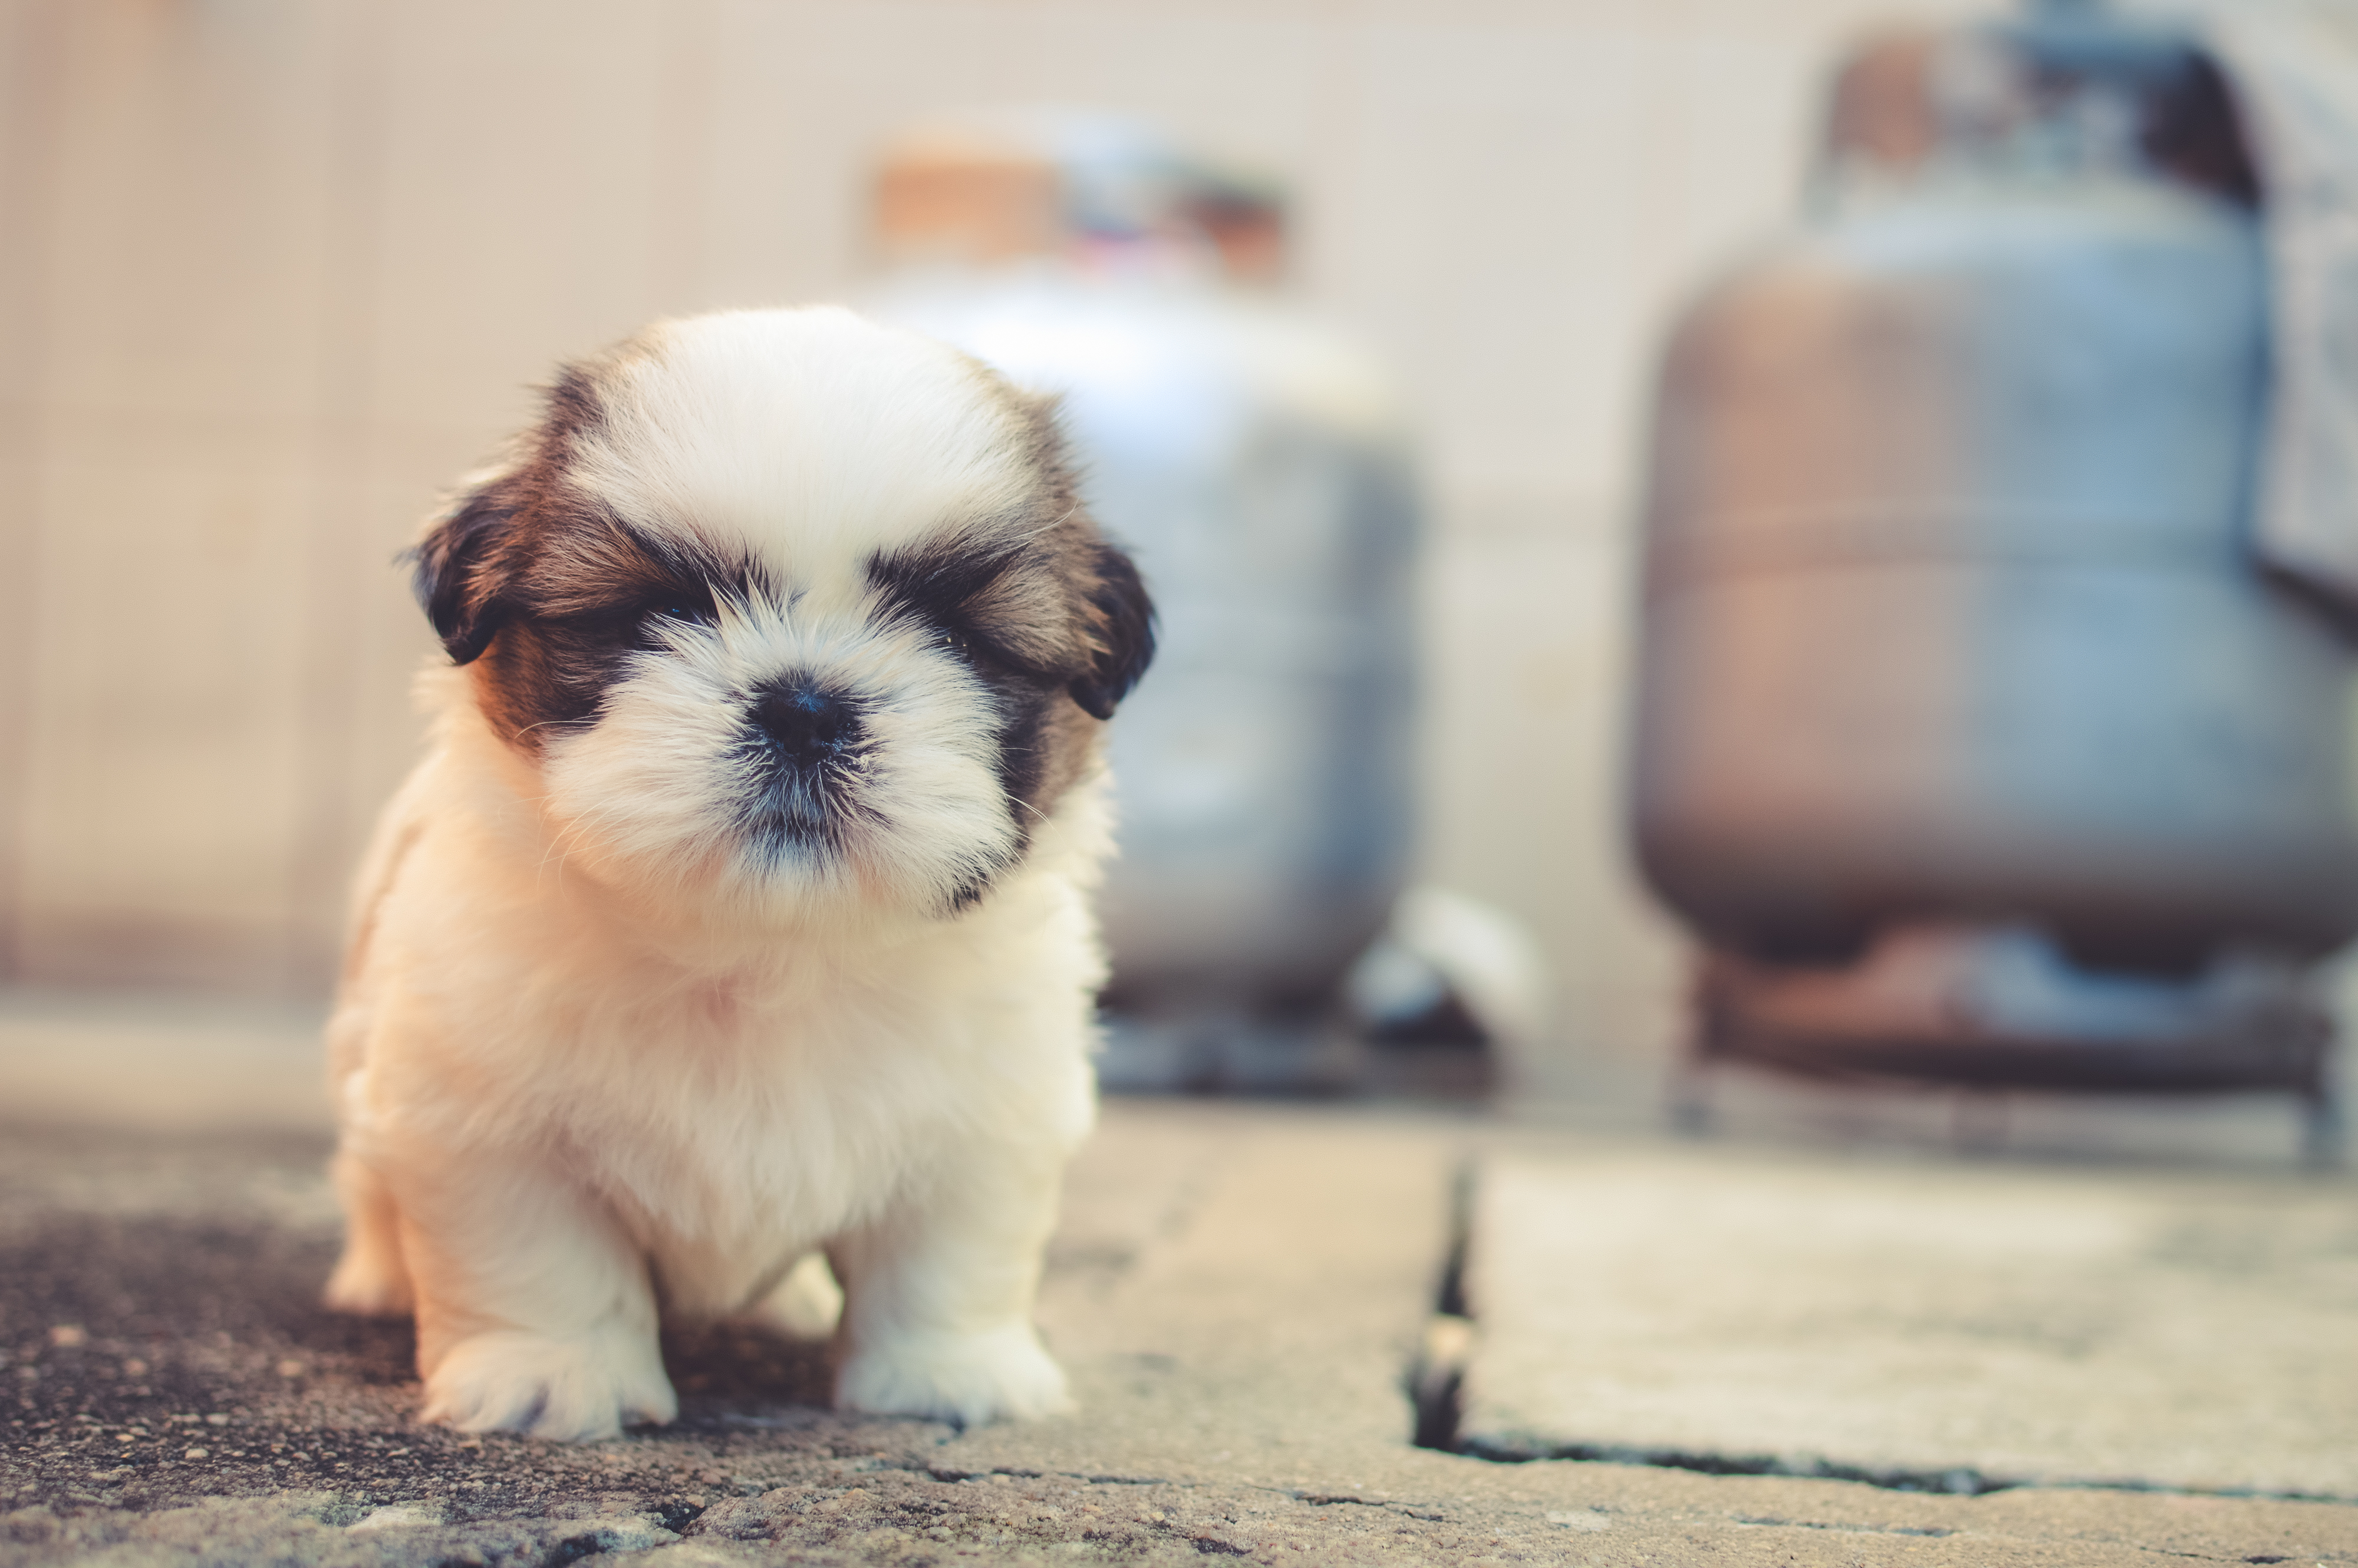 Free stock photos of puppy pexels white and brown long coated puppy macroshot photography voltagebd Choice Image